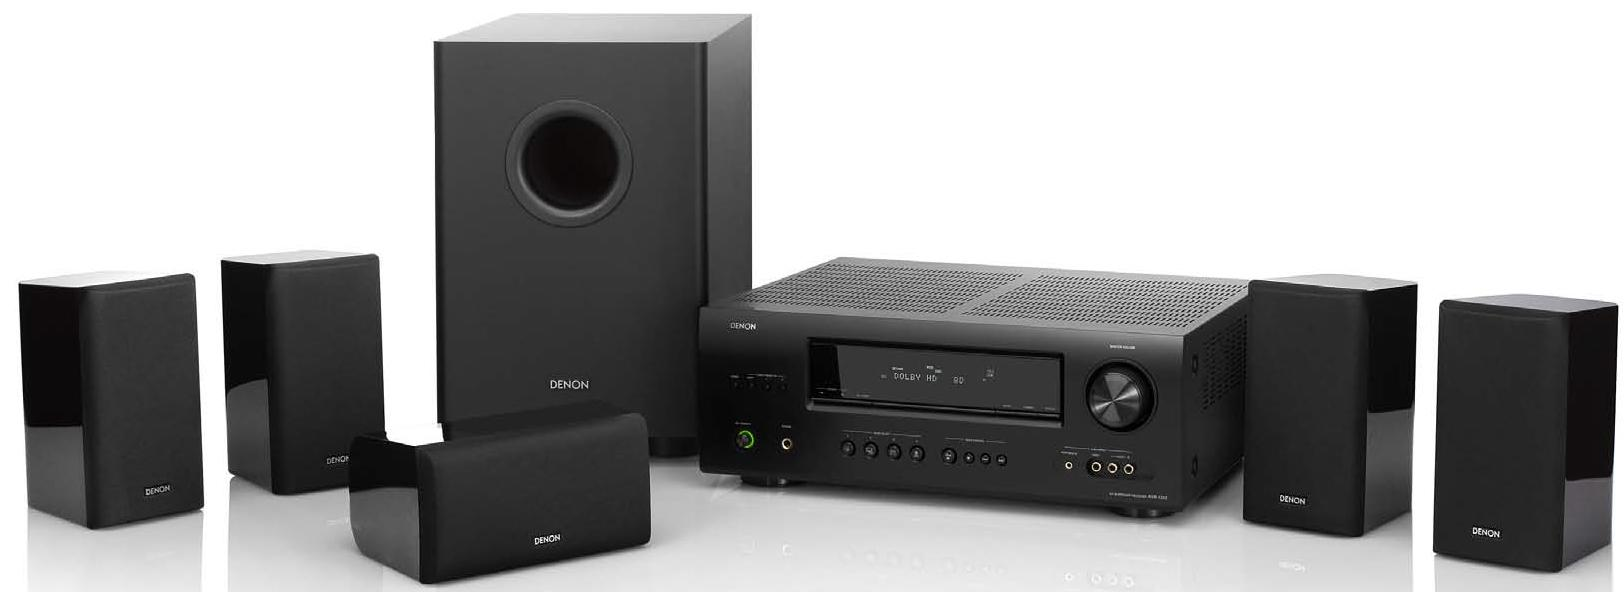 Denon Home Theater Systems 5.1 Channel Home Theater System - Item Number: DHT-1312XP